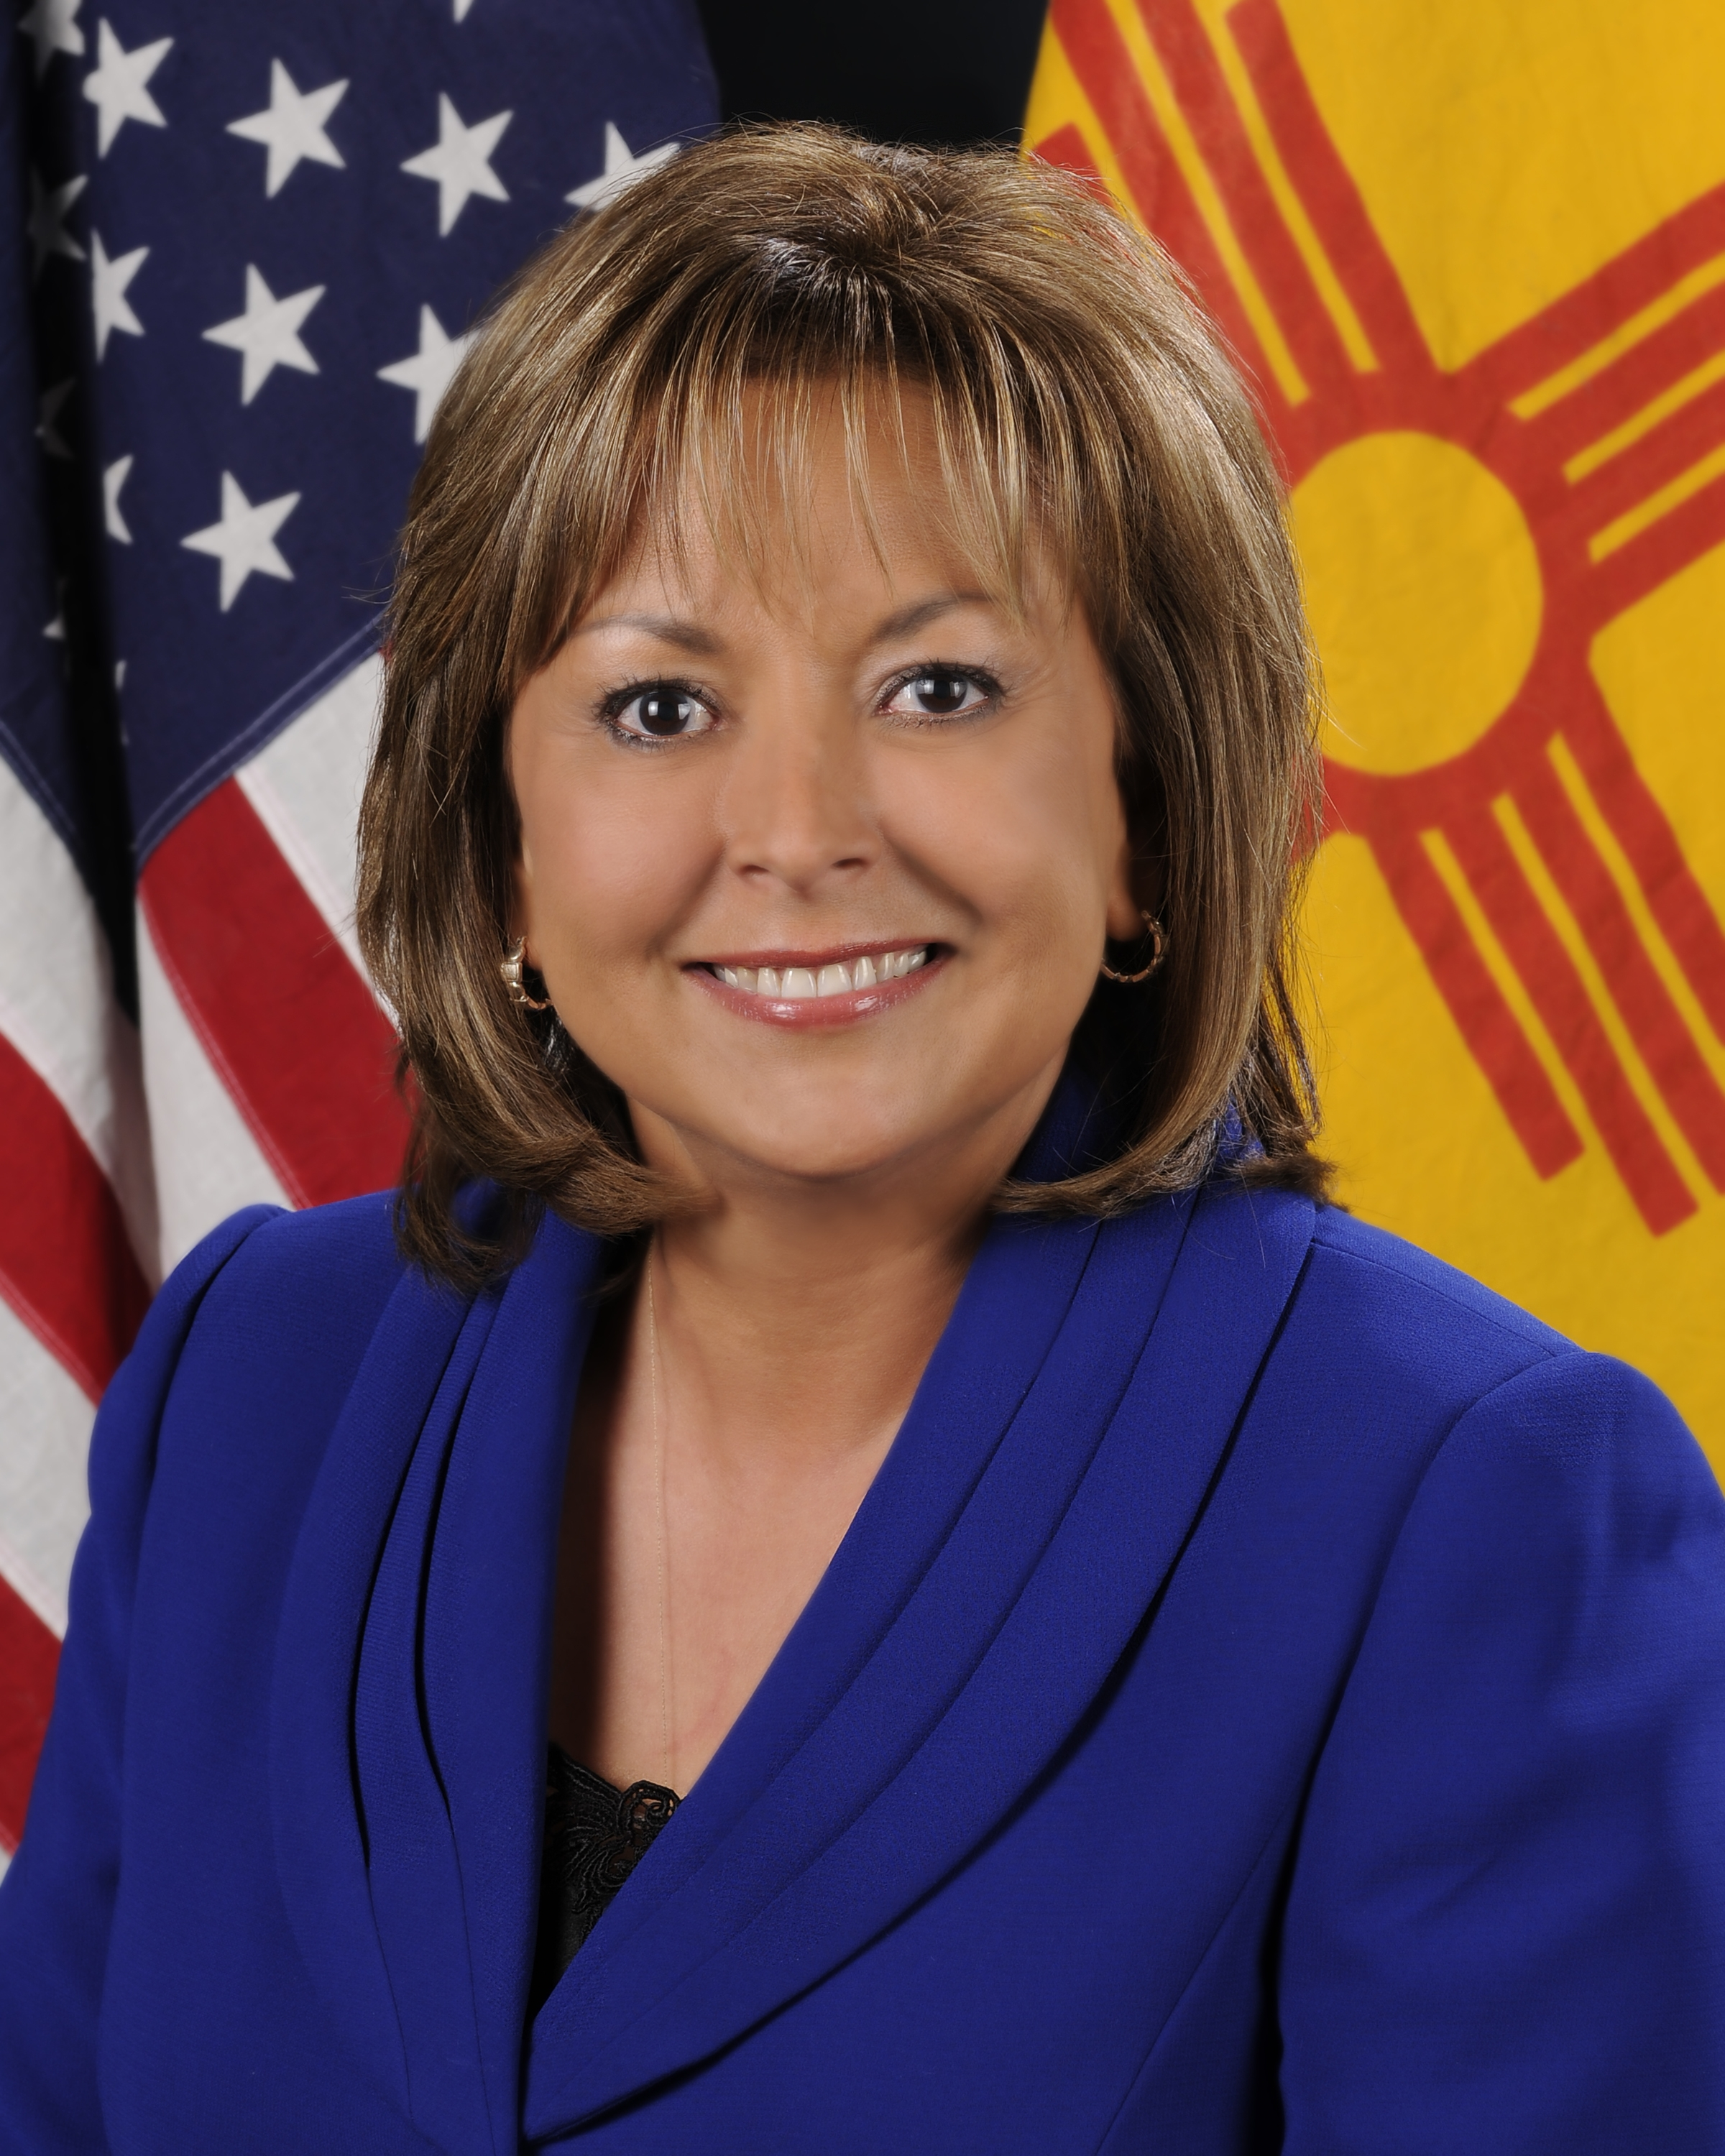 English: New Mexico State Governor Susana Martinez